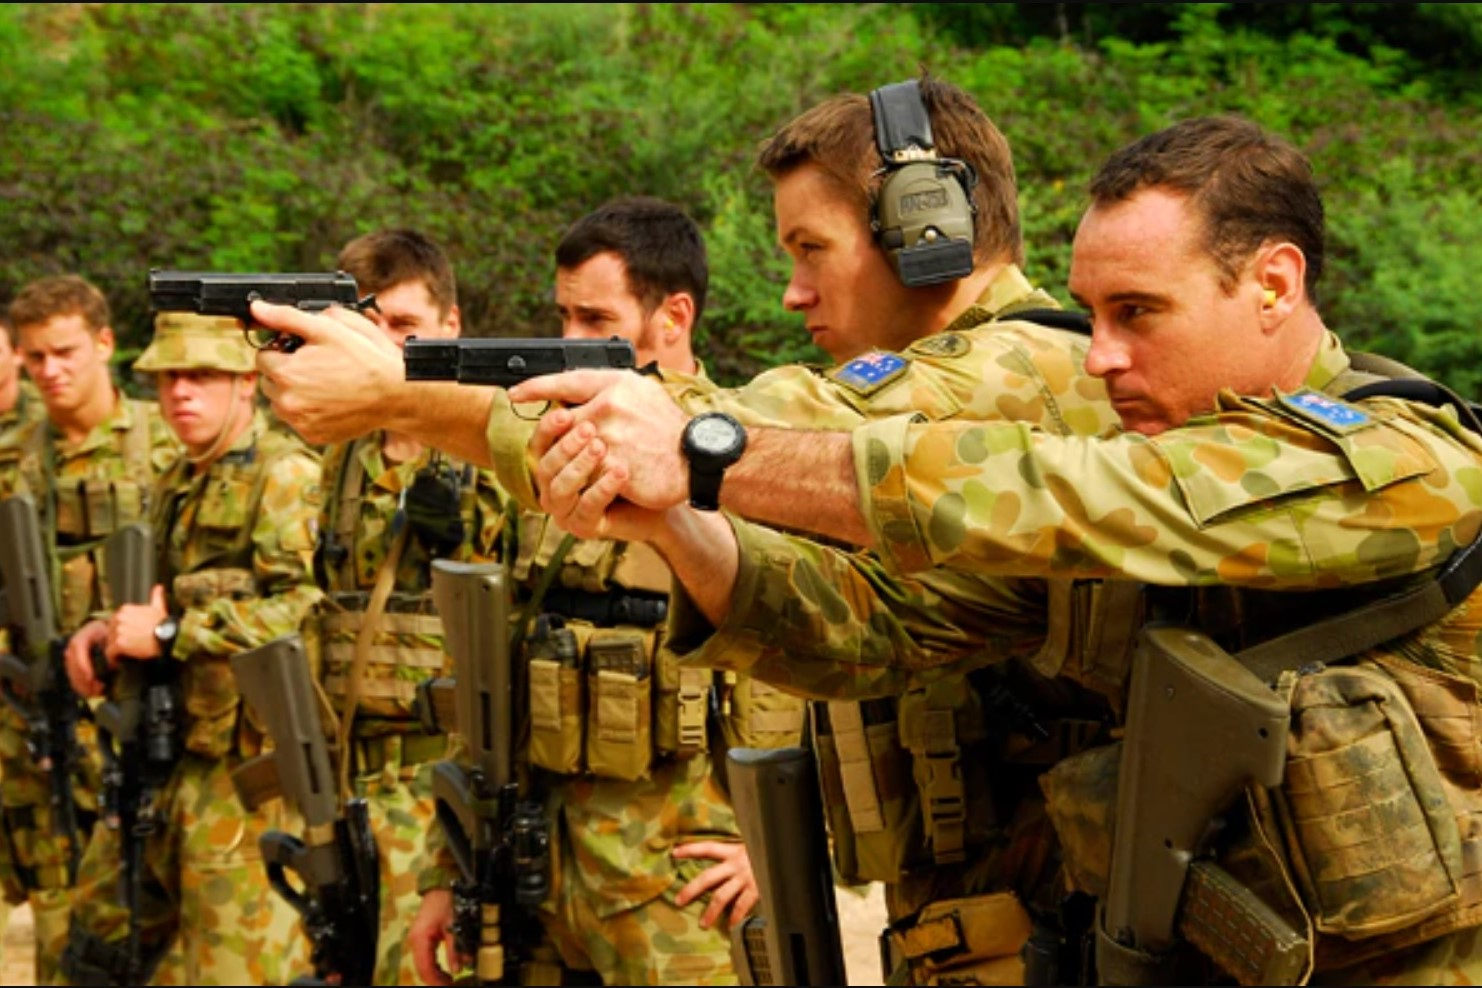 Private Greg Harris and Private Peter Hallin fire their 9mm Browning pistols, during a range practice in Dili, East Timor, 2009. (Photo: Royal Australian Army)